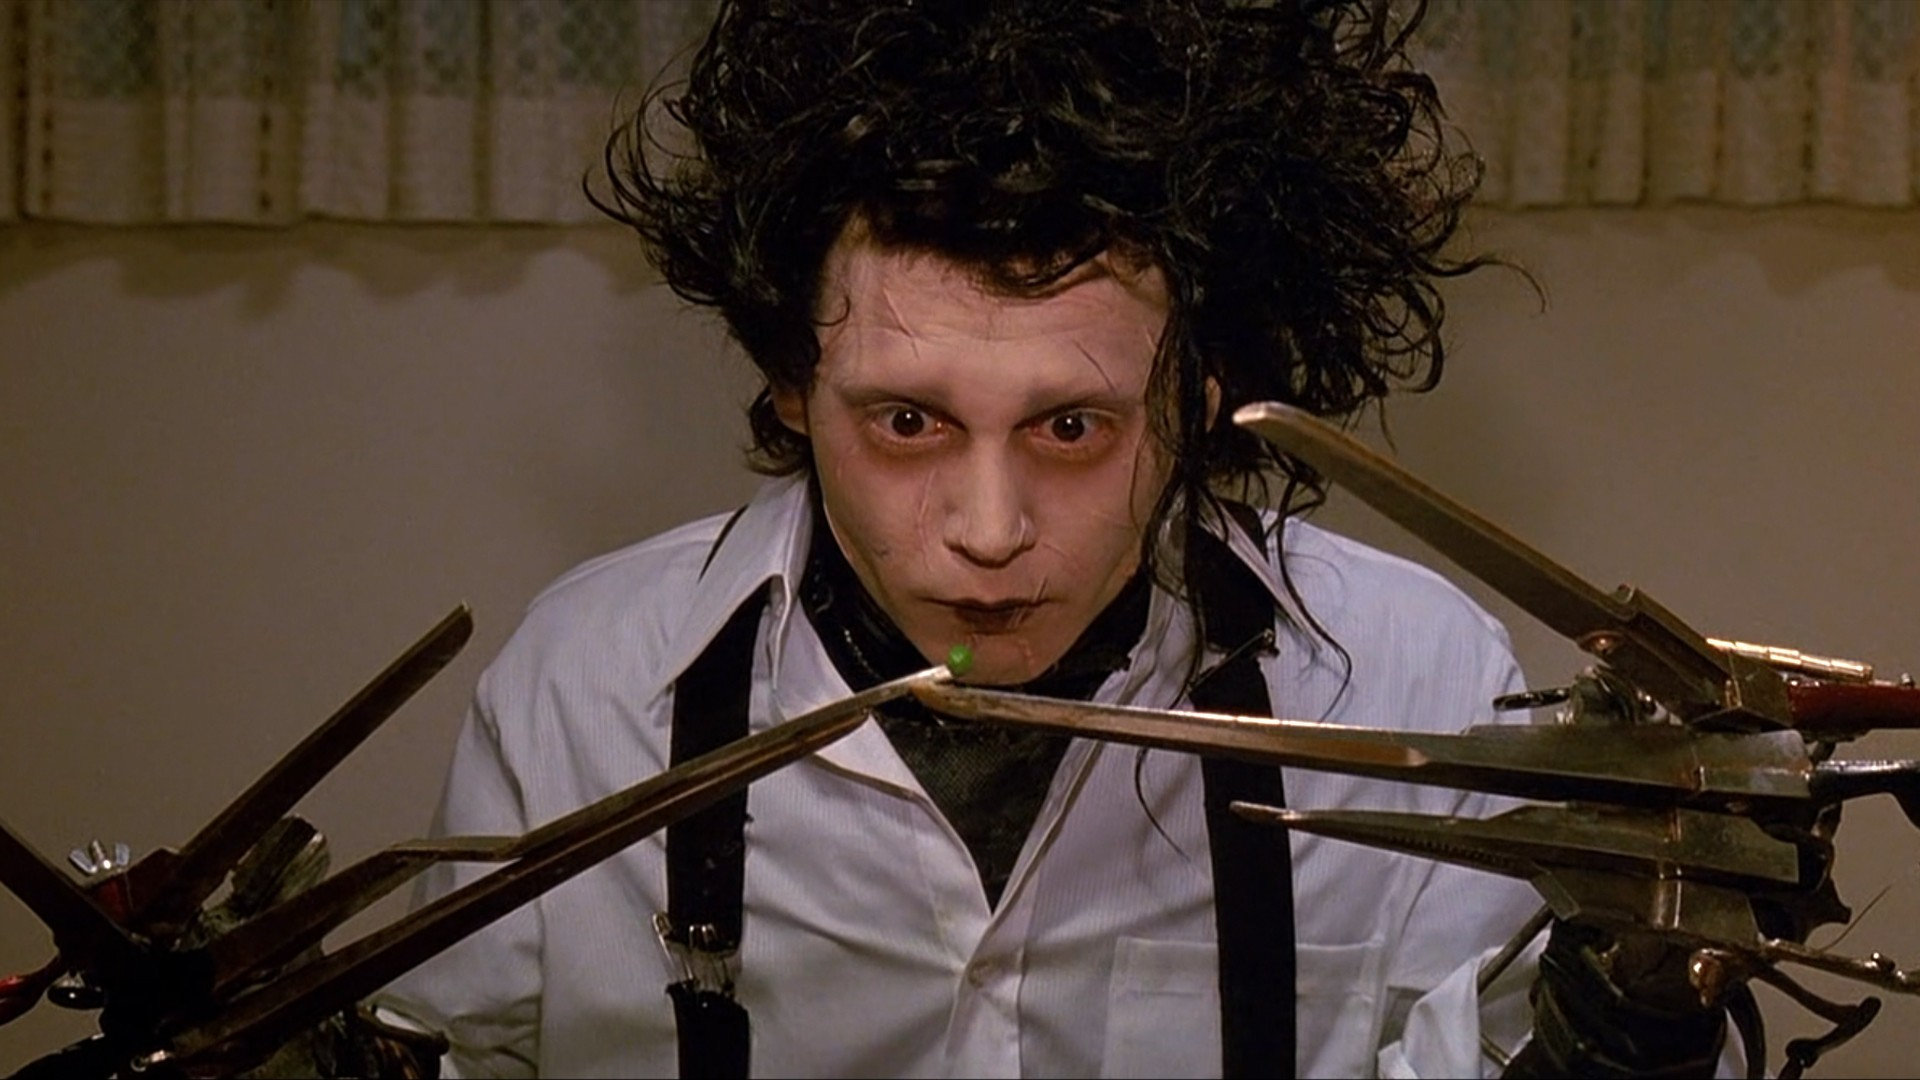 Edward-Scissorhands-1990